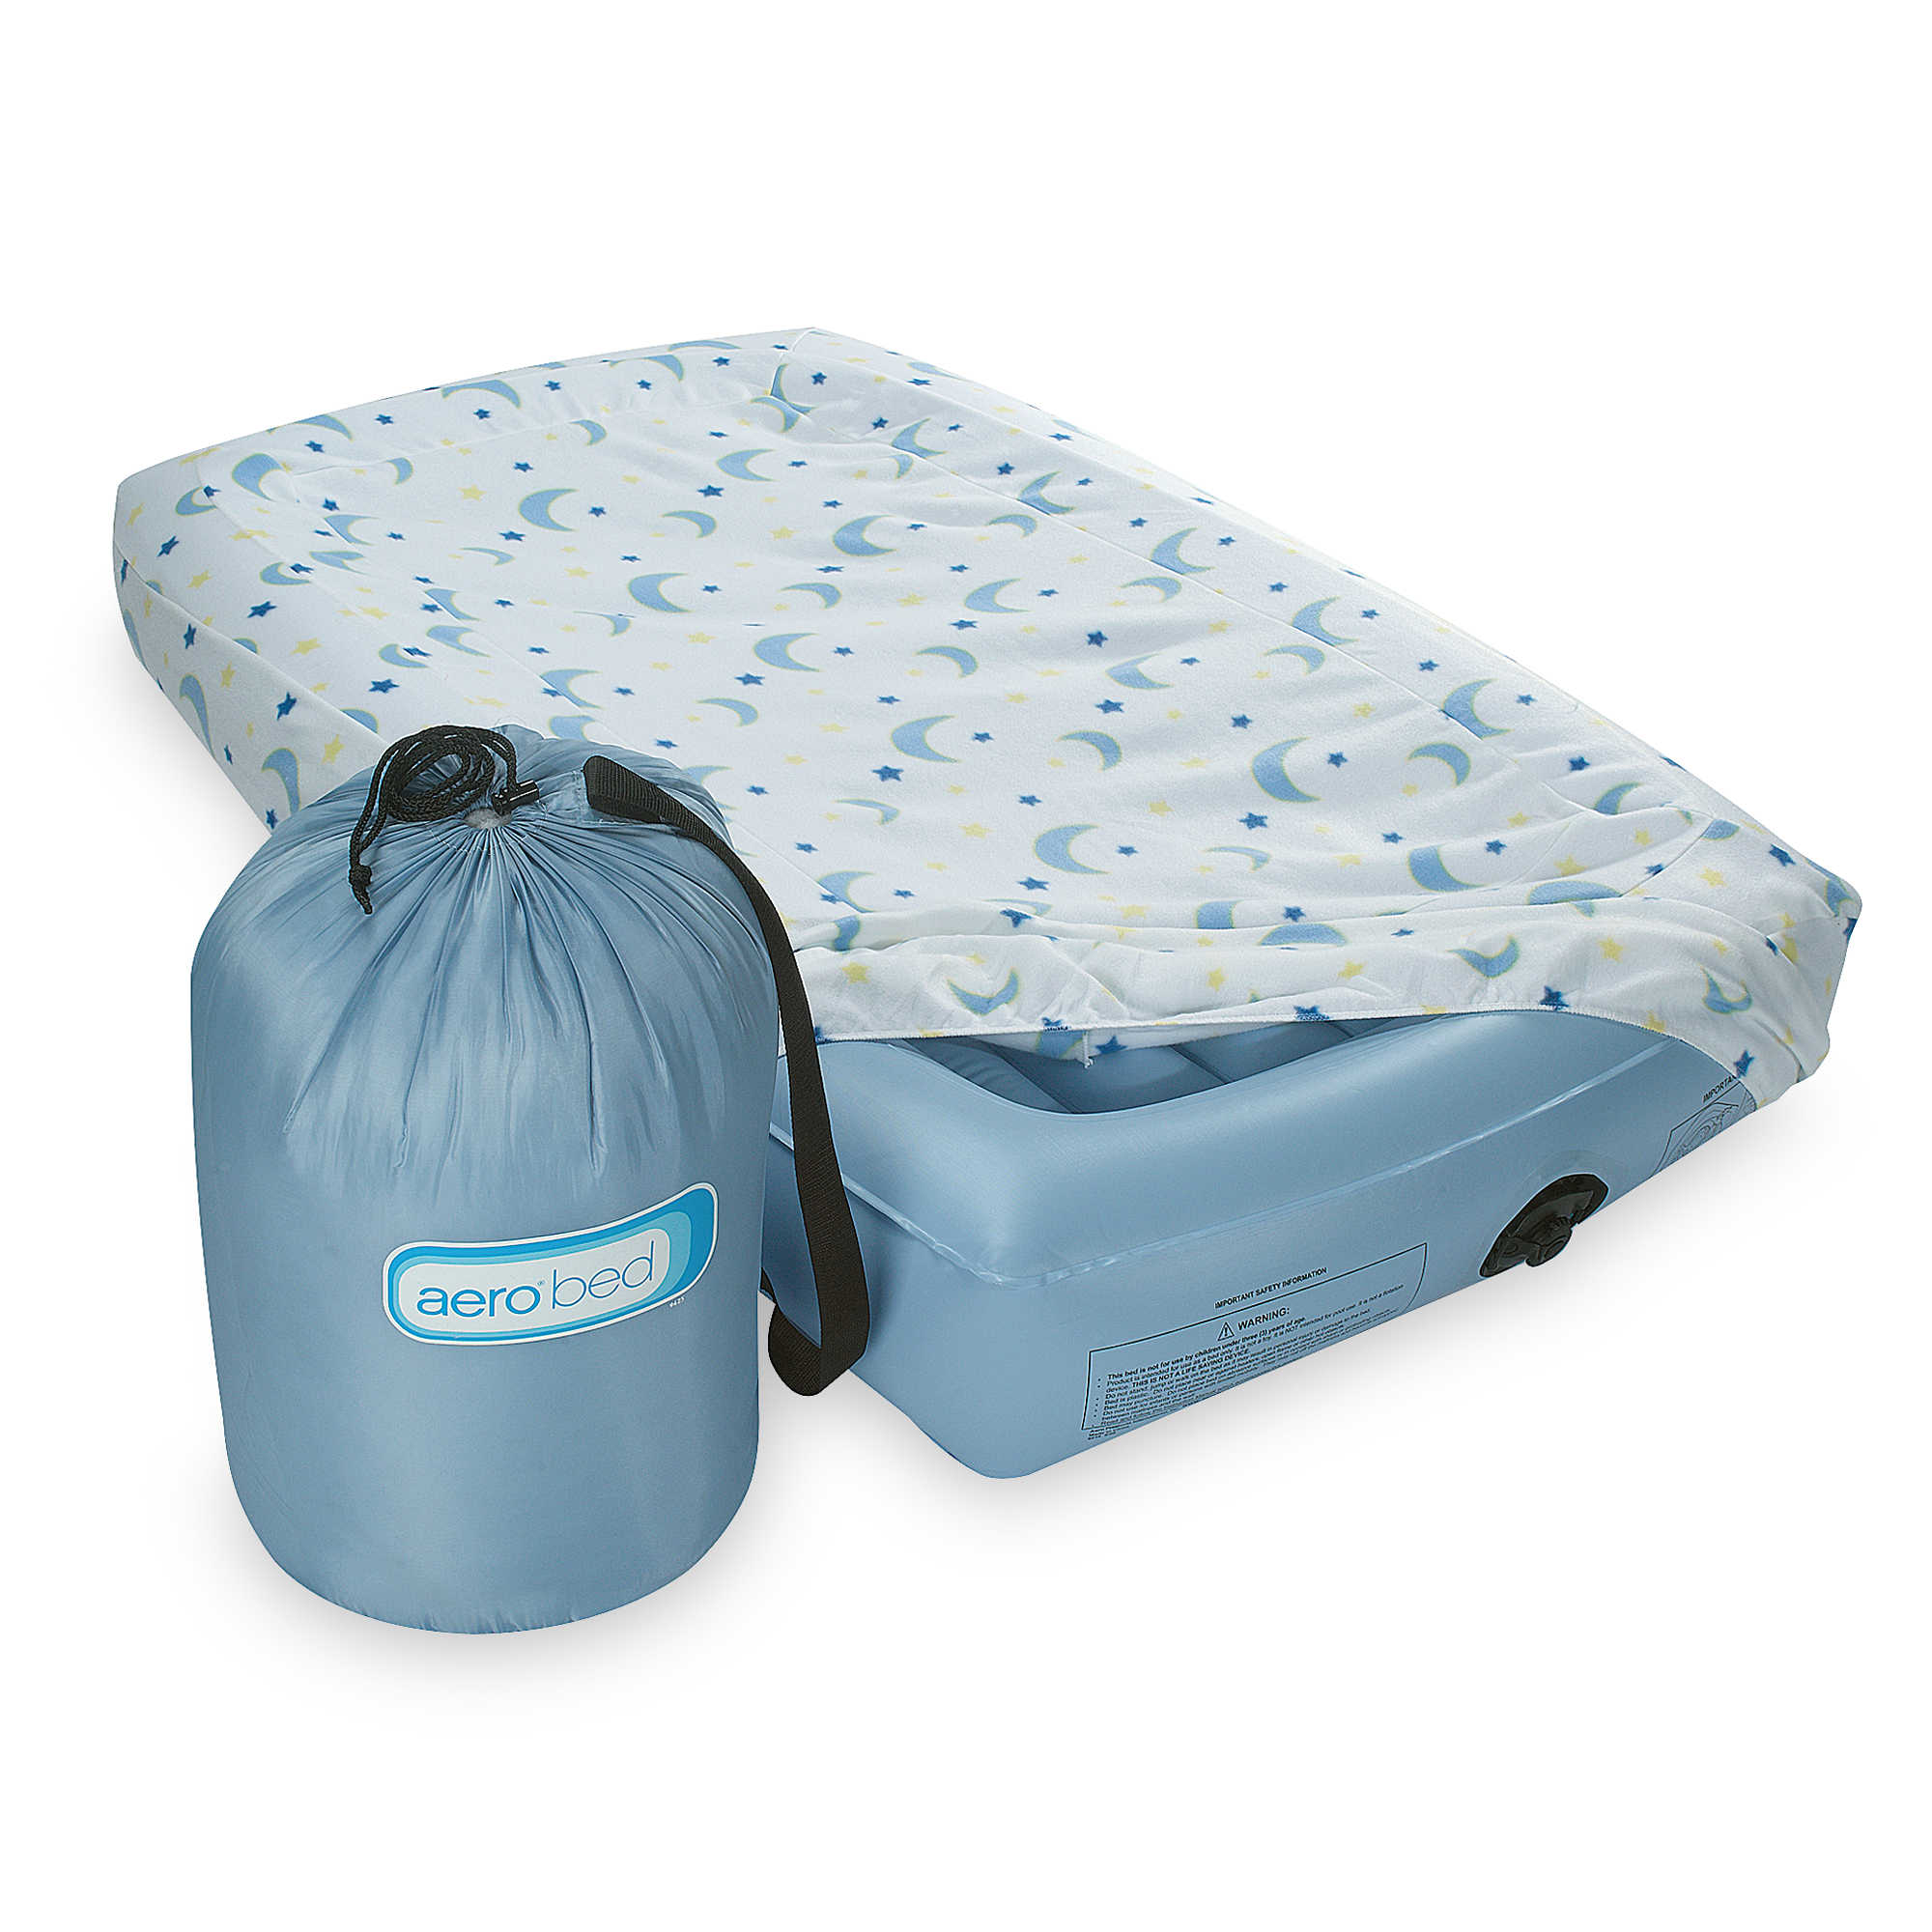 Bed bath and beyond fort myers fl - Image Of Aerobed For Kids